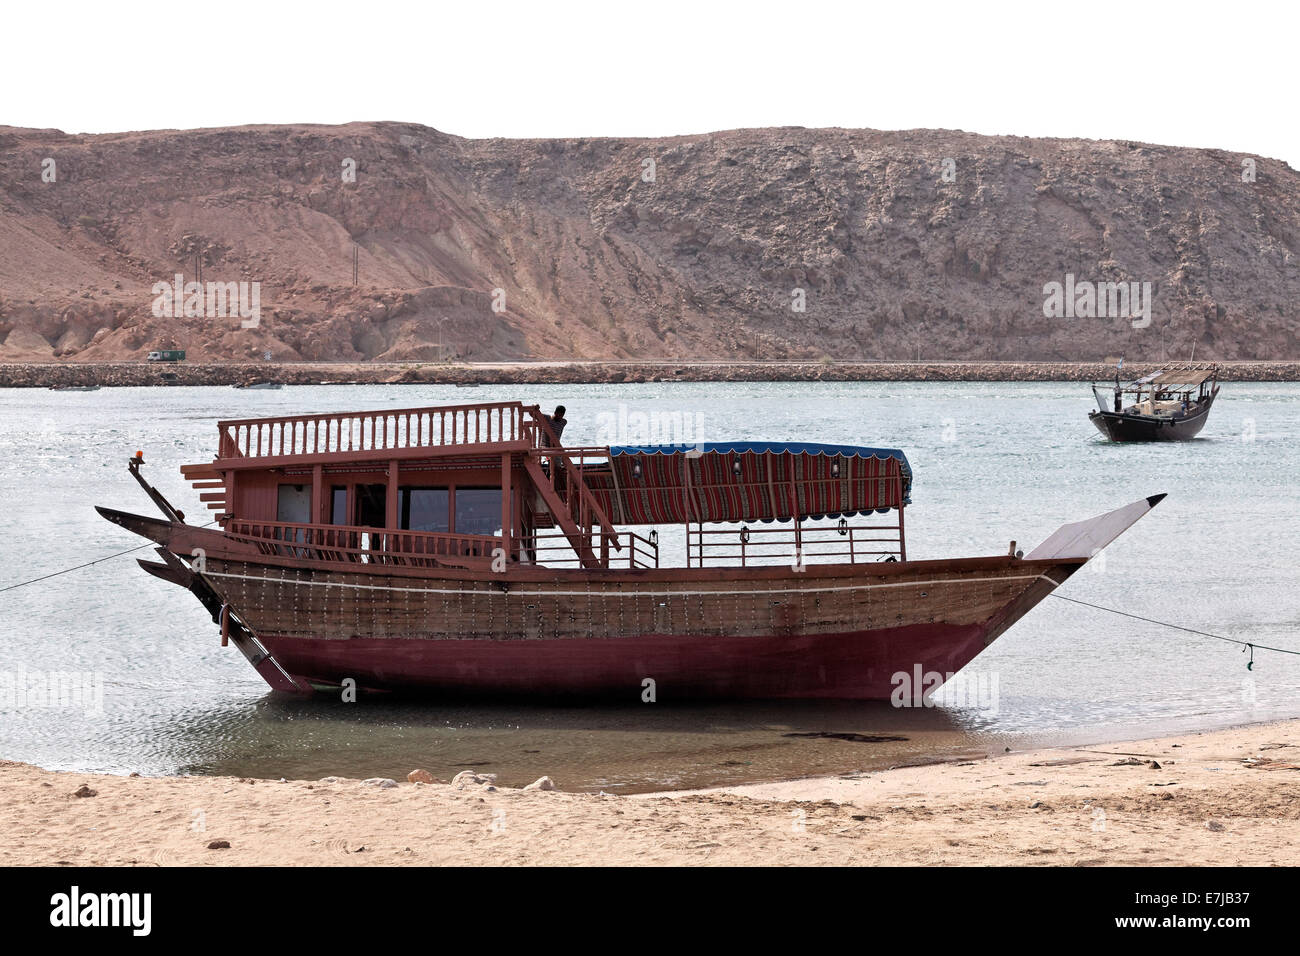 Dhow-ships in the harbour of Sur, Ash Sharqiyah province, Sultanate of Oman, Arabian Peninsula - Stock Image